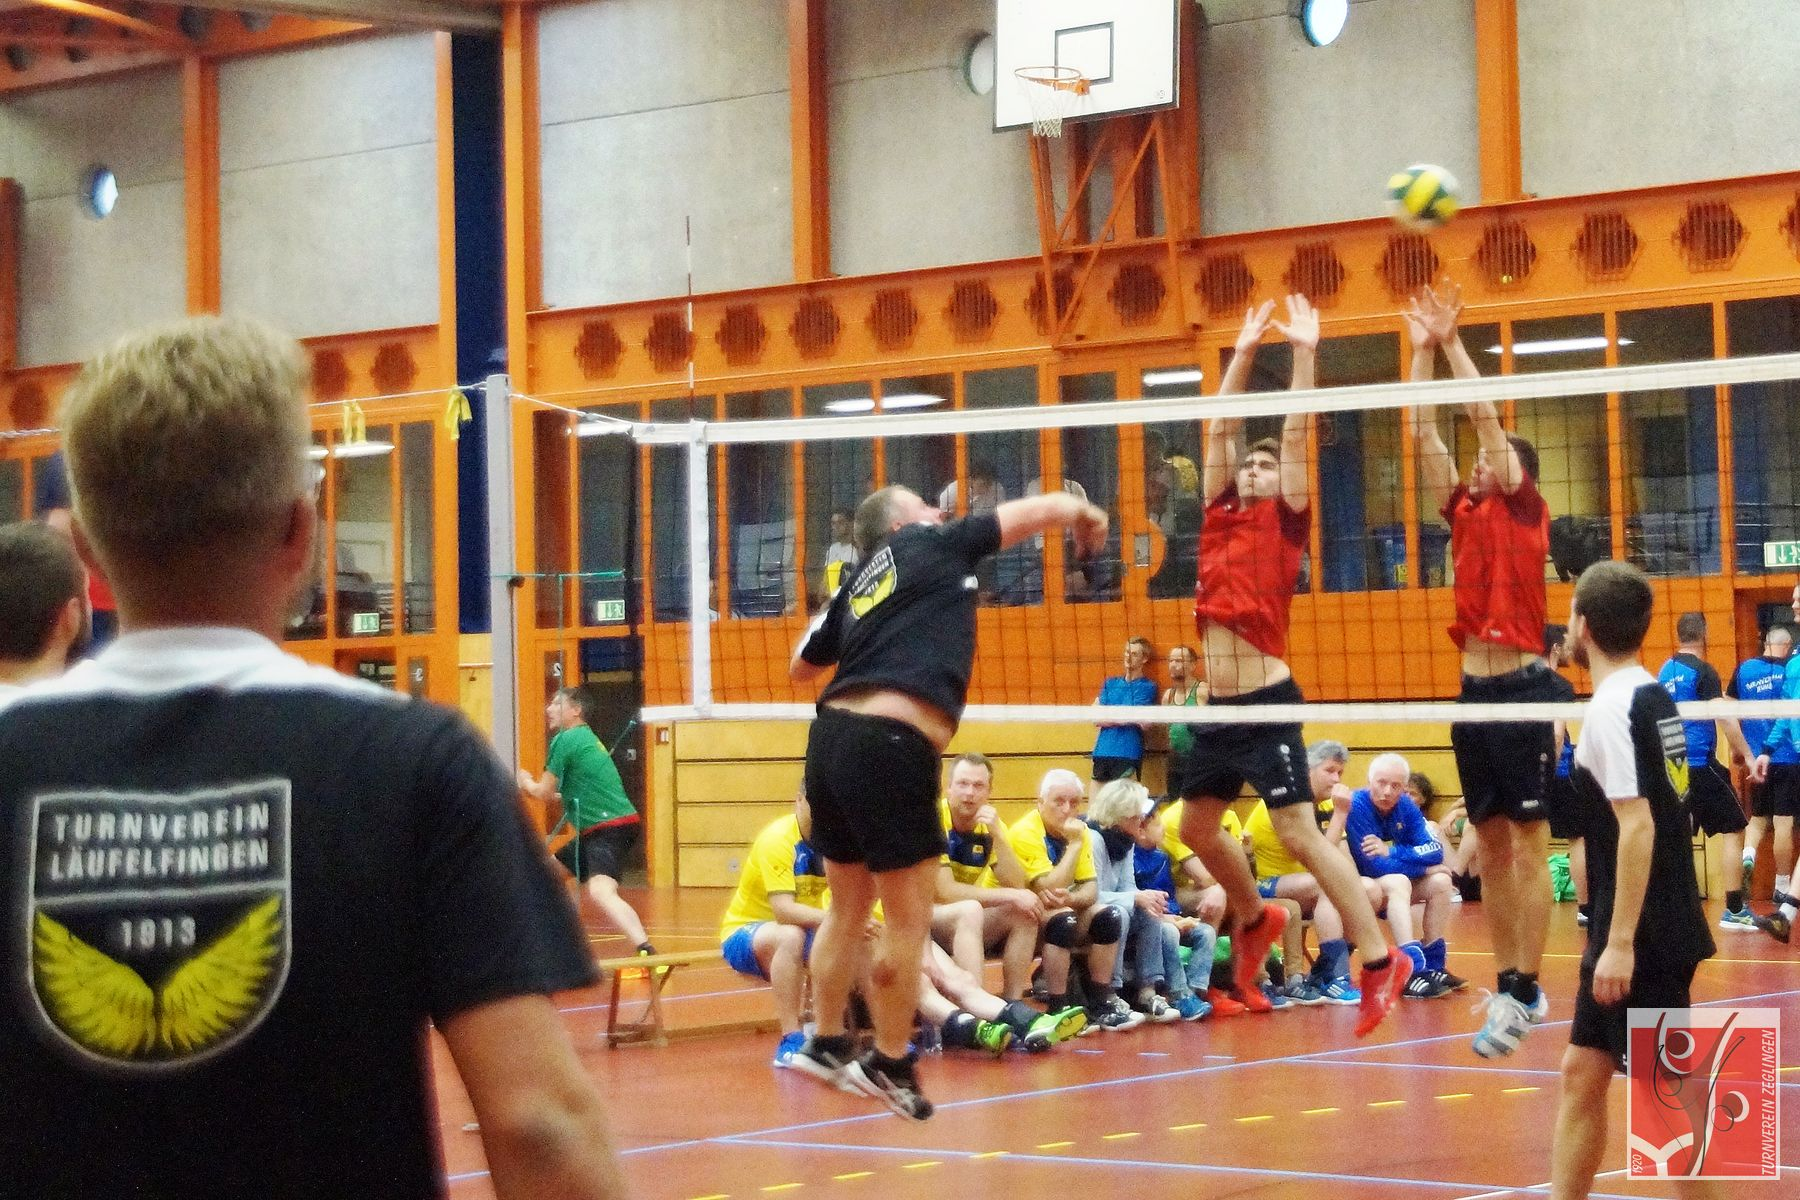 Volleyballturnier 2019 5